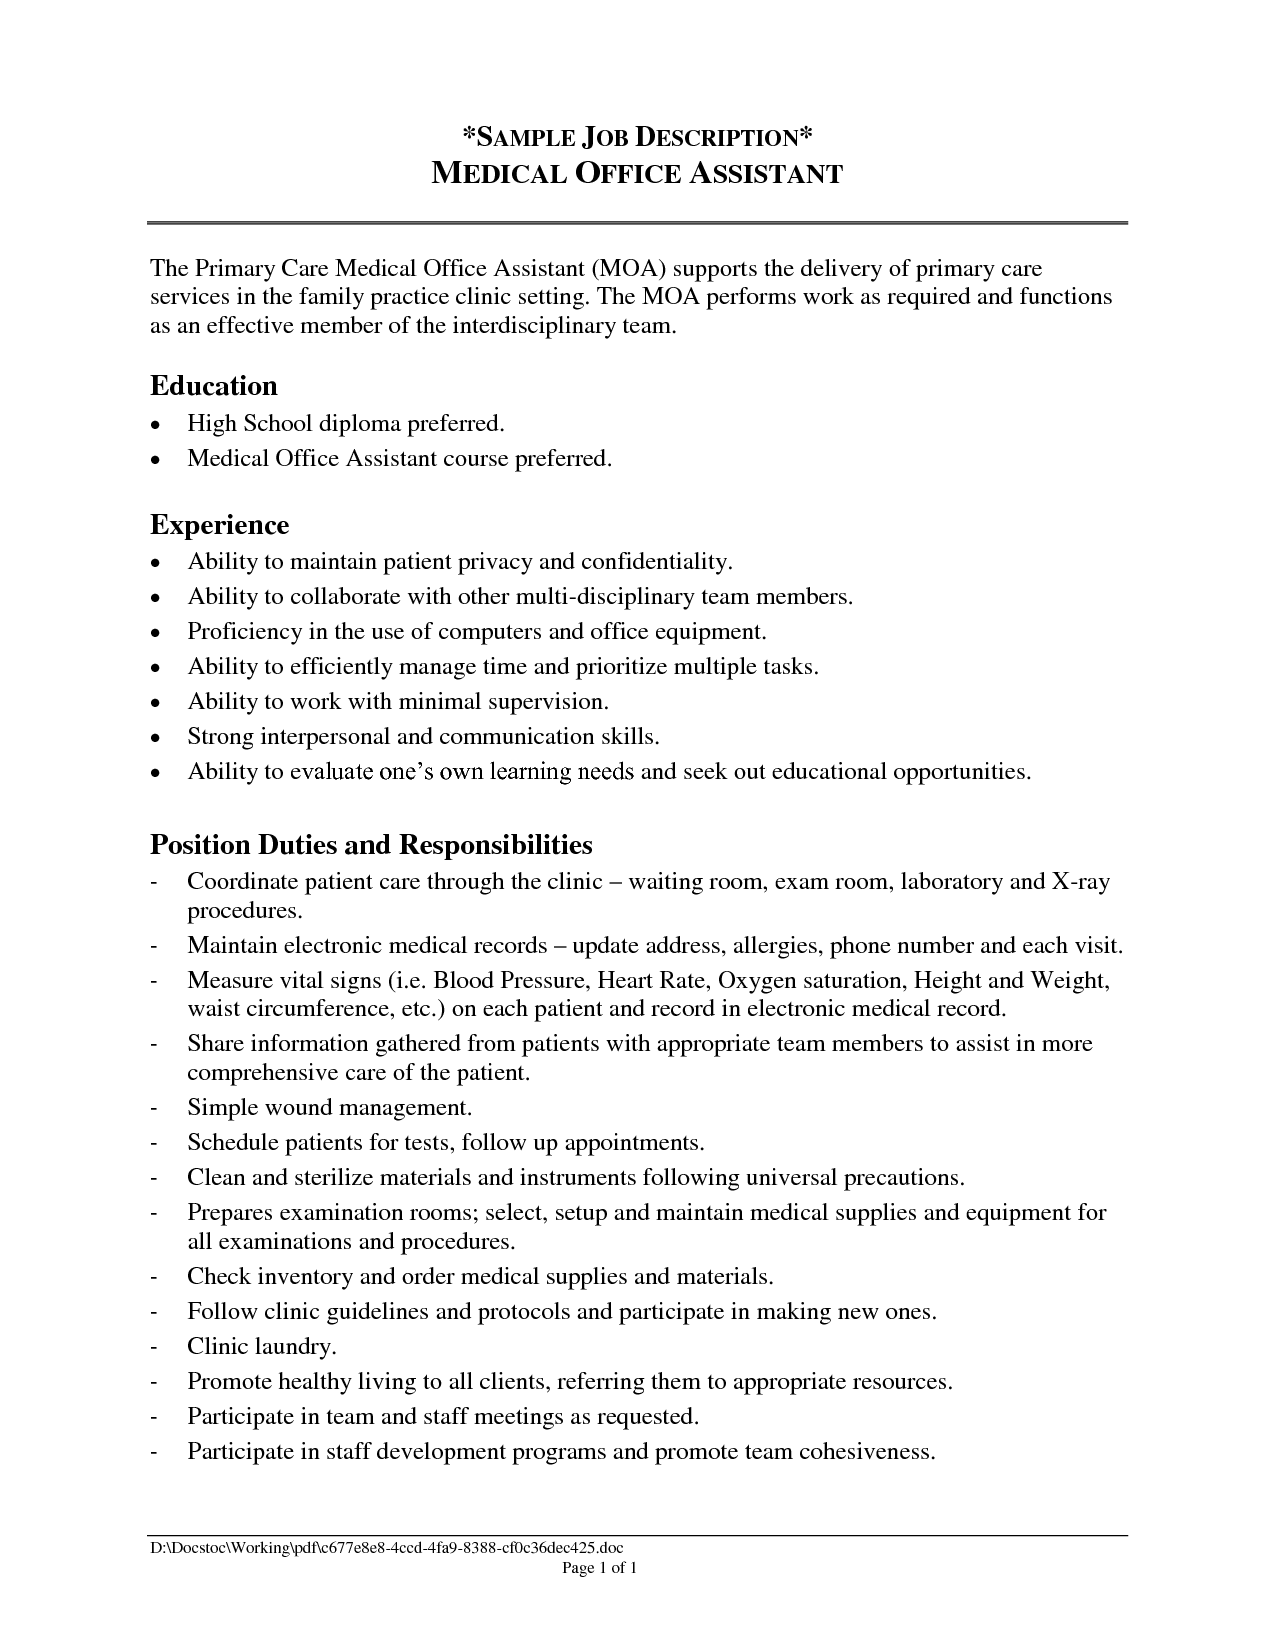 office assistant skills list job description